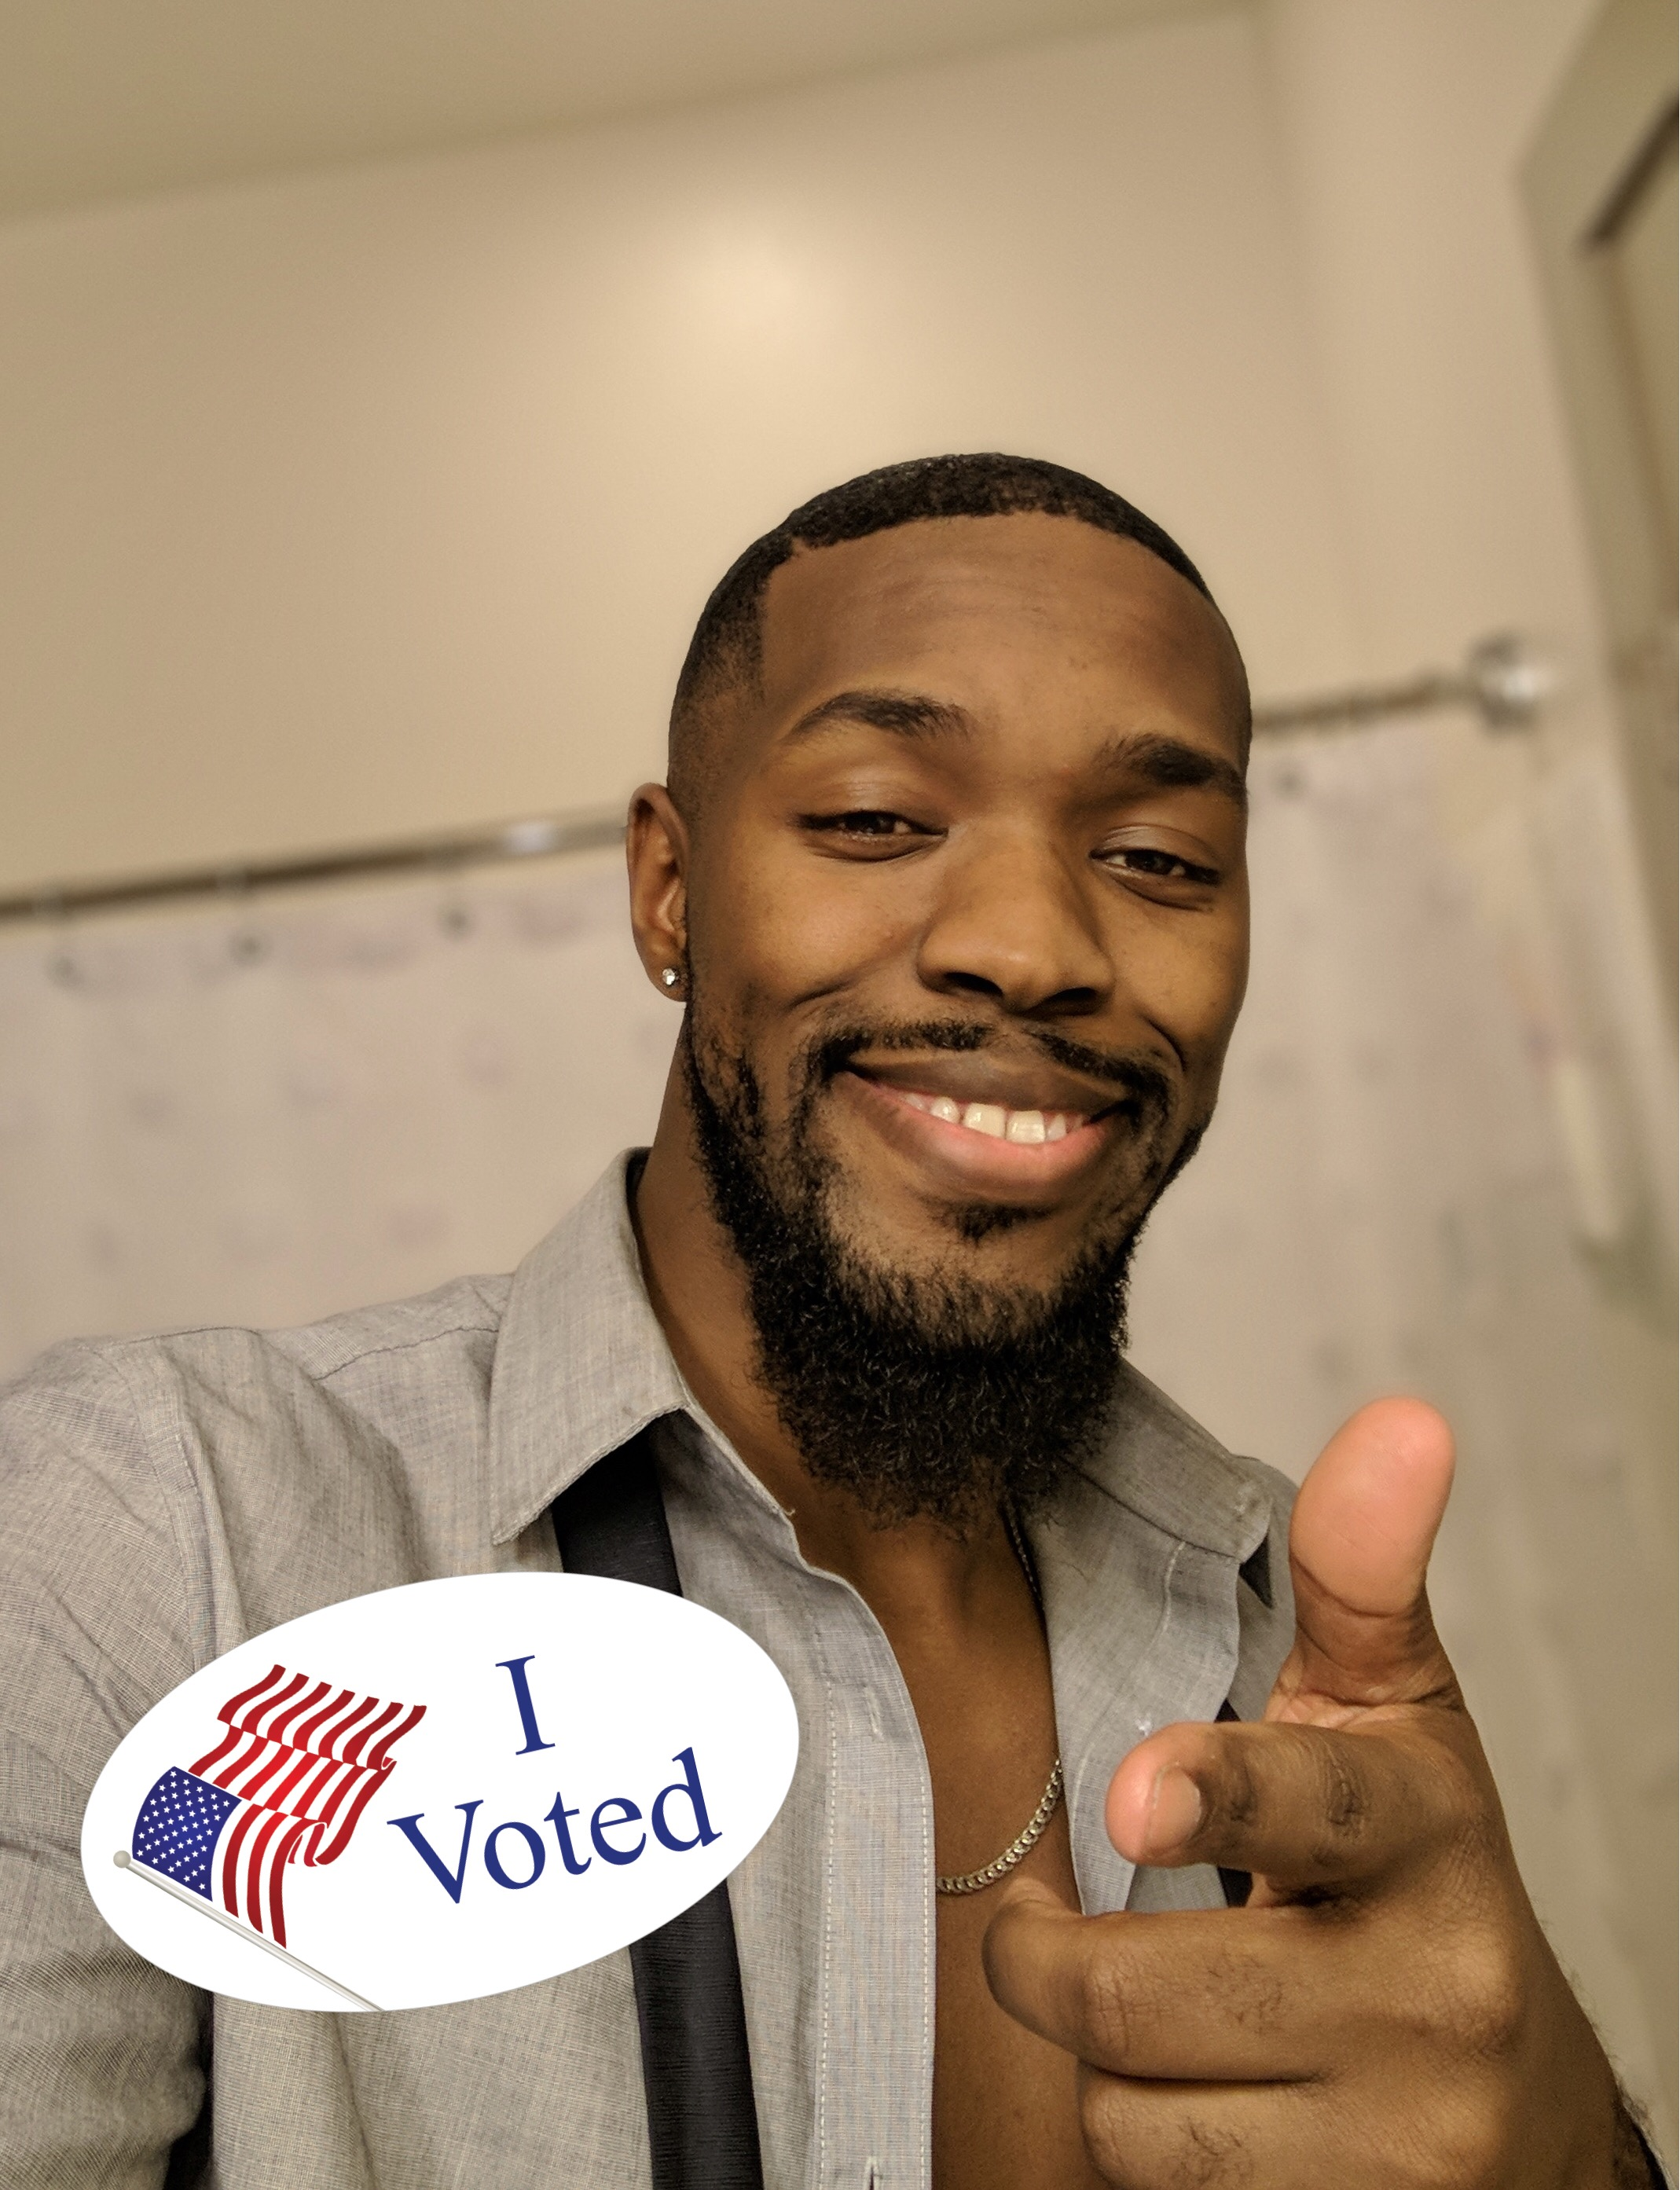 #ivoted #freetoedit